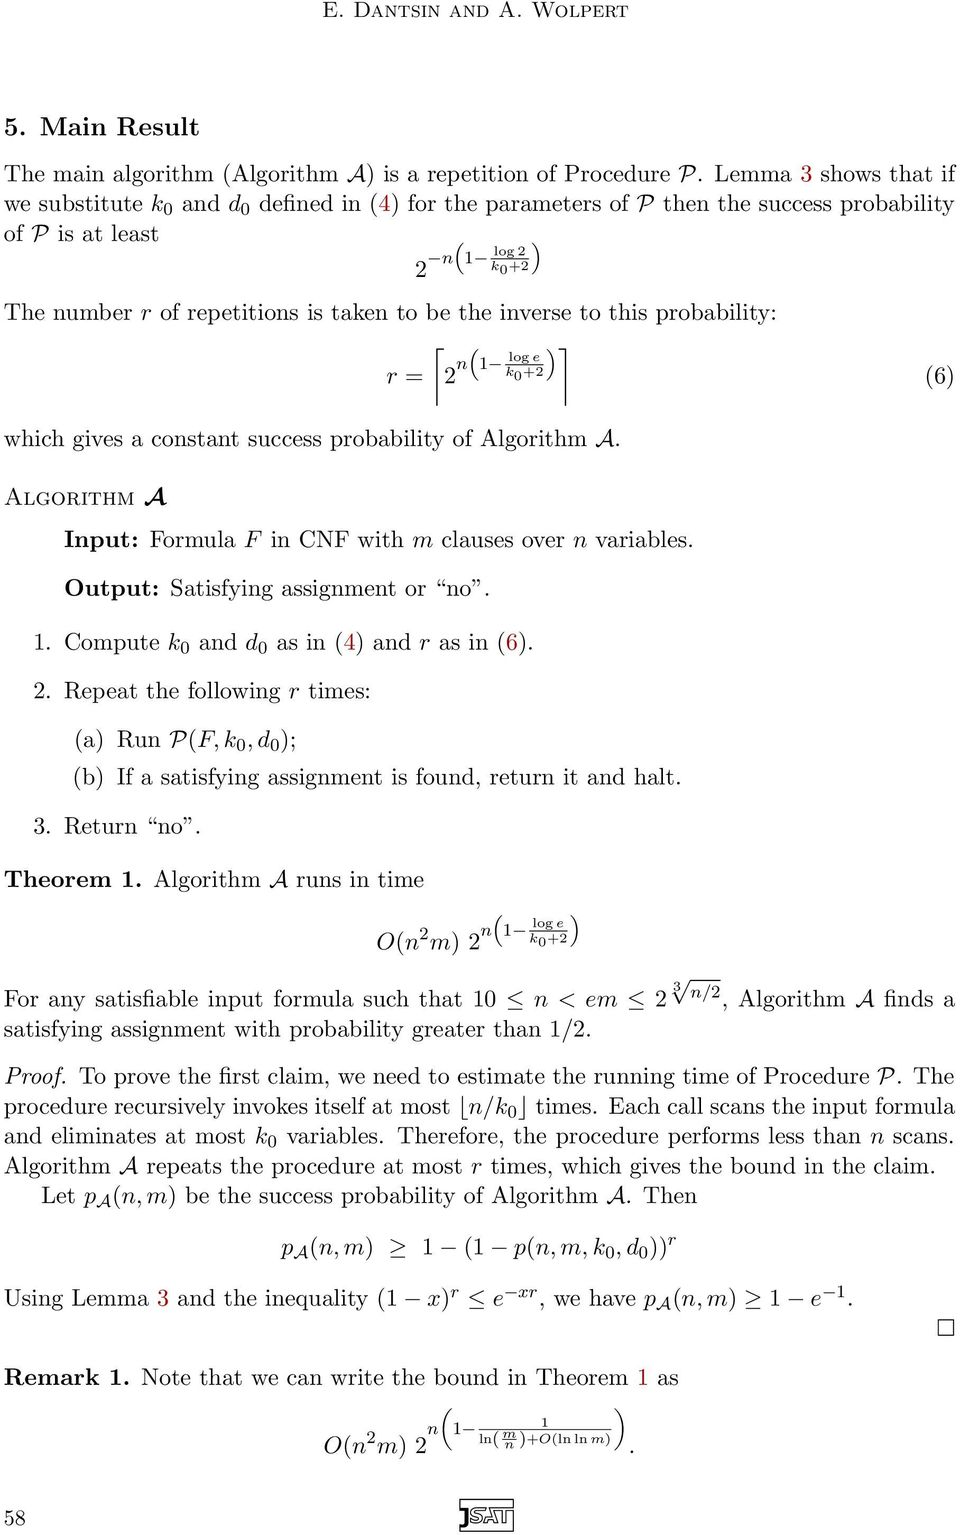 probability: r = 2 1 log e +2 which gives a costat success probability of Algorithm A. Algorithm A Iput: Formula F i CNF with m clauses over variables. Output: Satisfyig assigmet or o. 1. Compute ad d 0 as i 4) ad r as i 6).